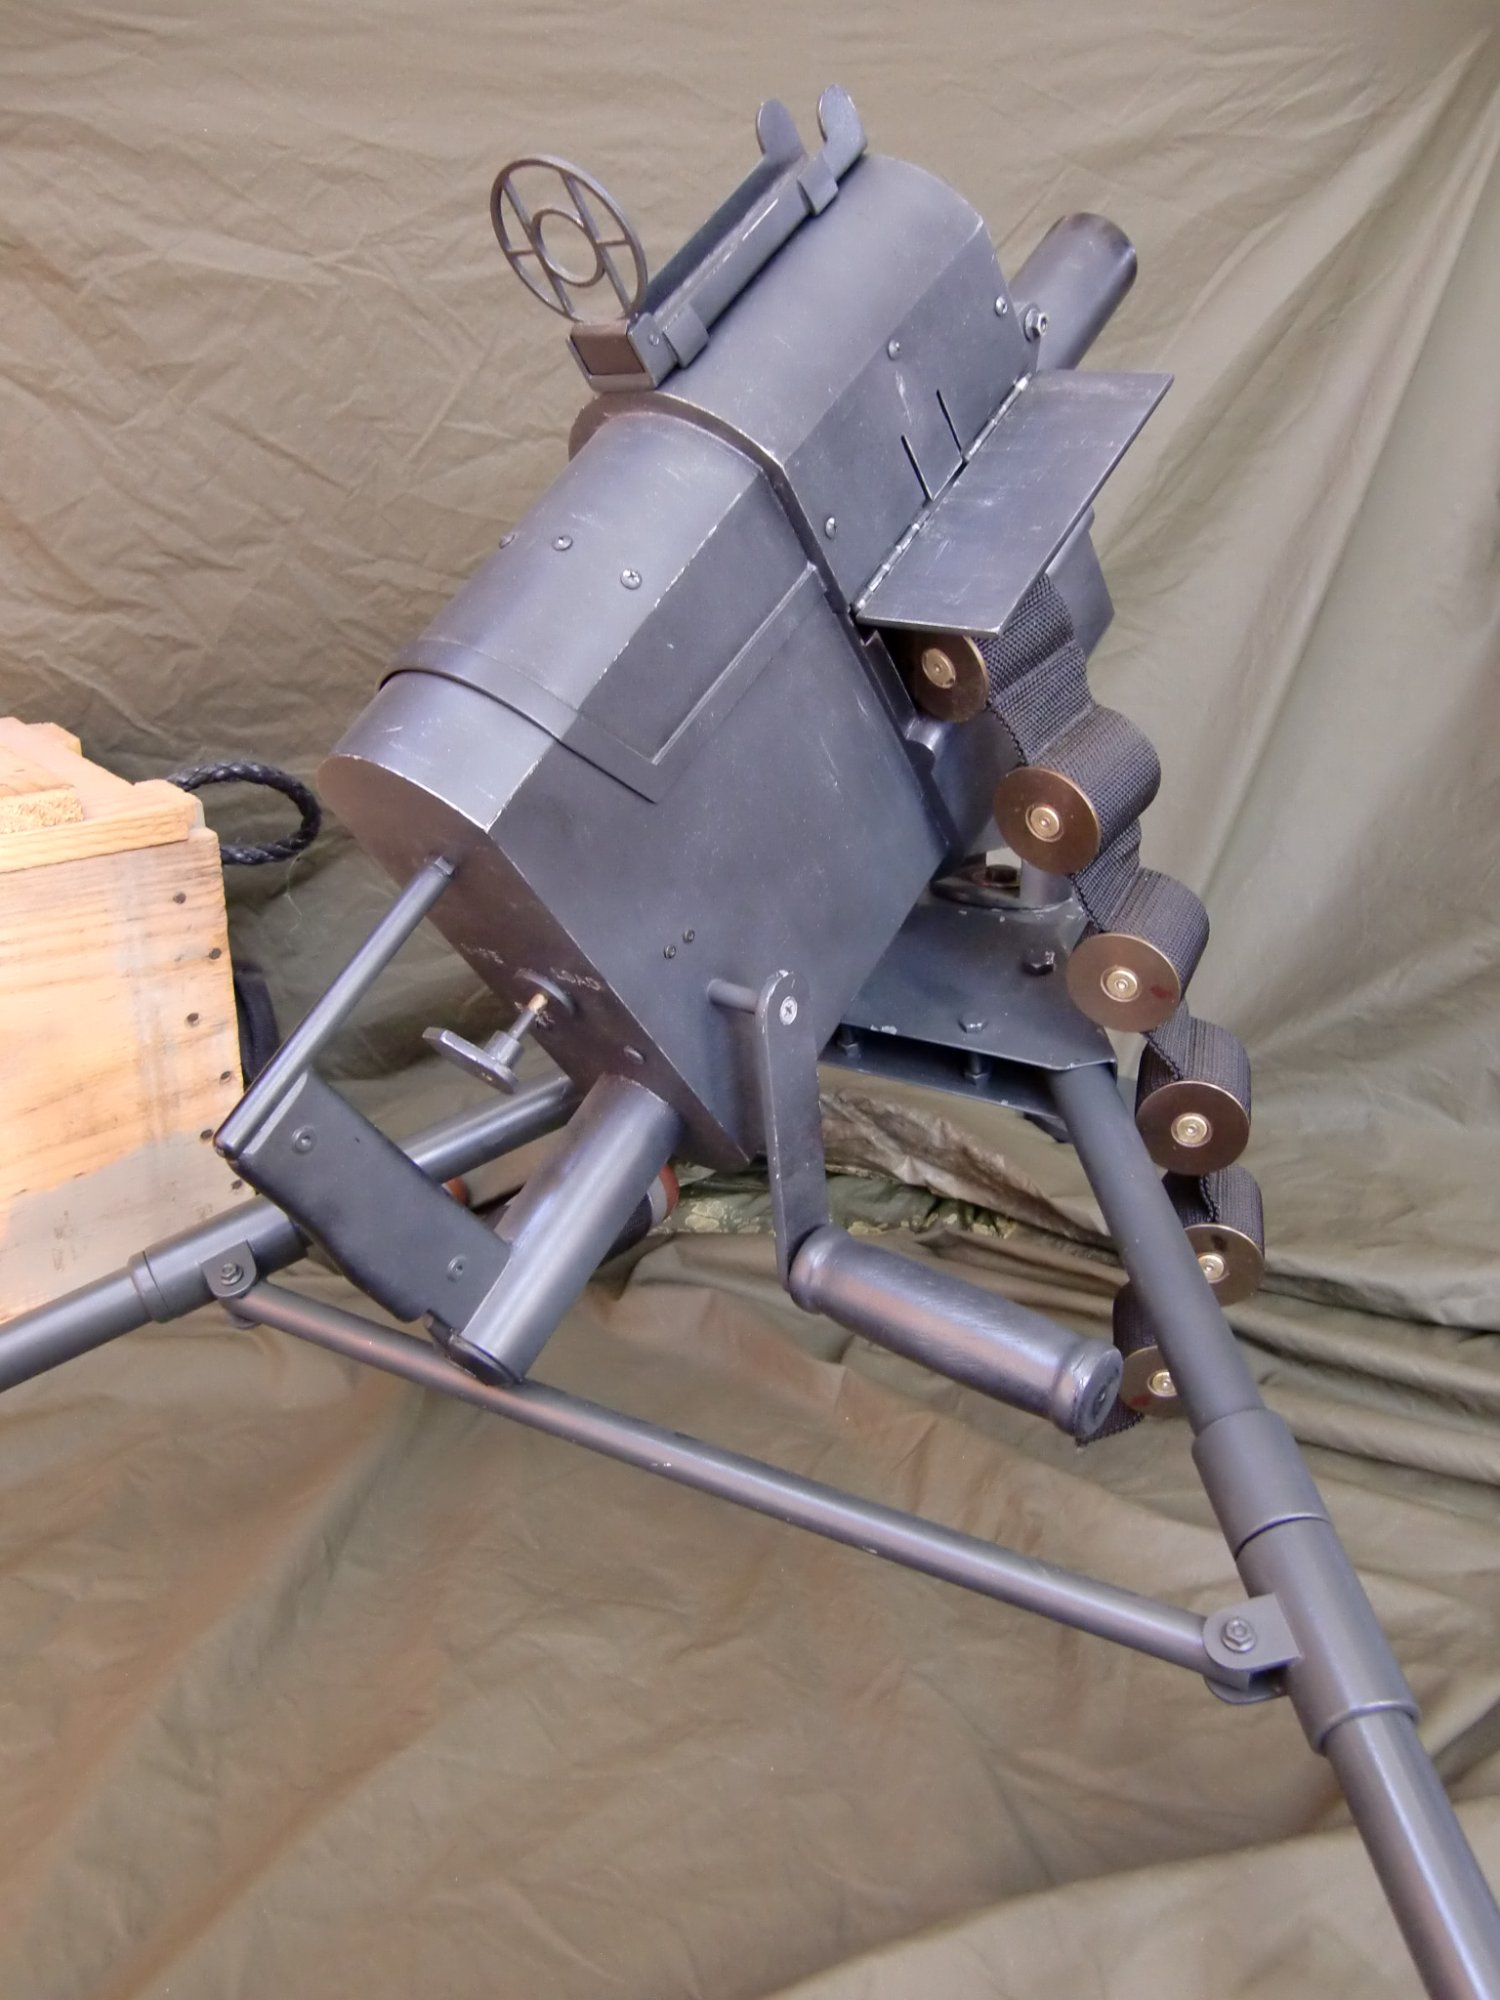 This might be a bit of overkill for home defense-14322150007.jpg